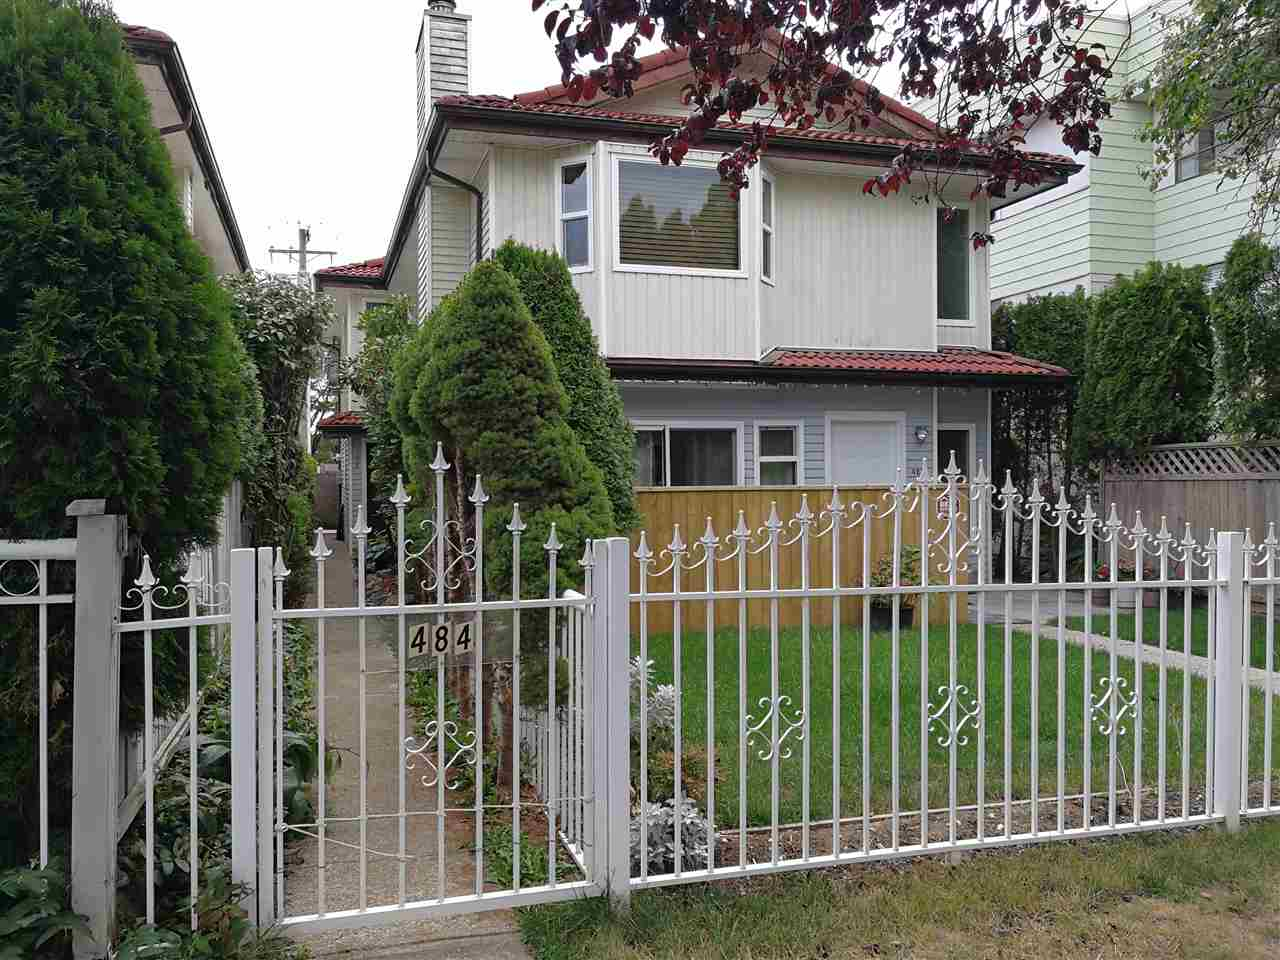 Main Photo: 484 E 43RD Avenue in Vancouver: Fraser VE House 1/2 Duplex for sale (Vancouver East)  : MLS® # R2207834